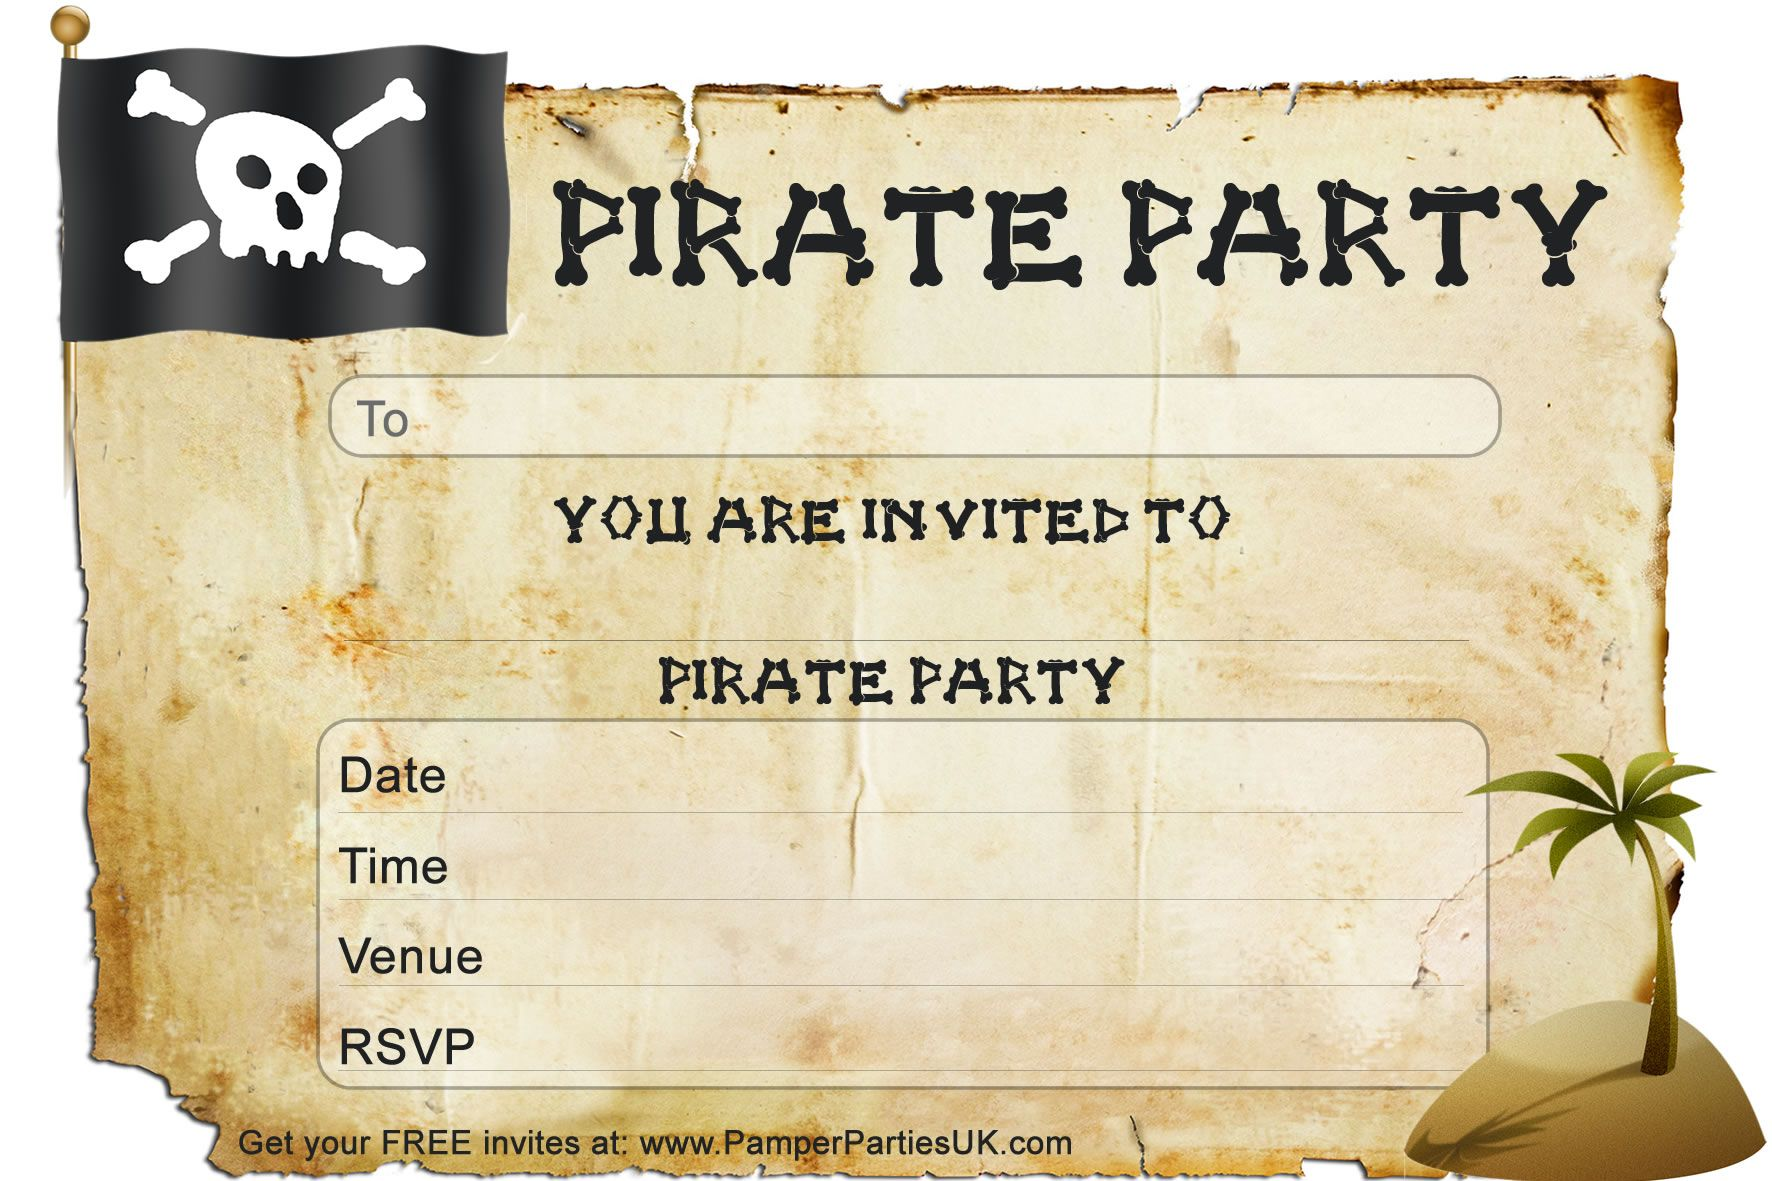 pirate invitation template pirate party invitations pirate invitation template pirate party invitations boys parties pictures